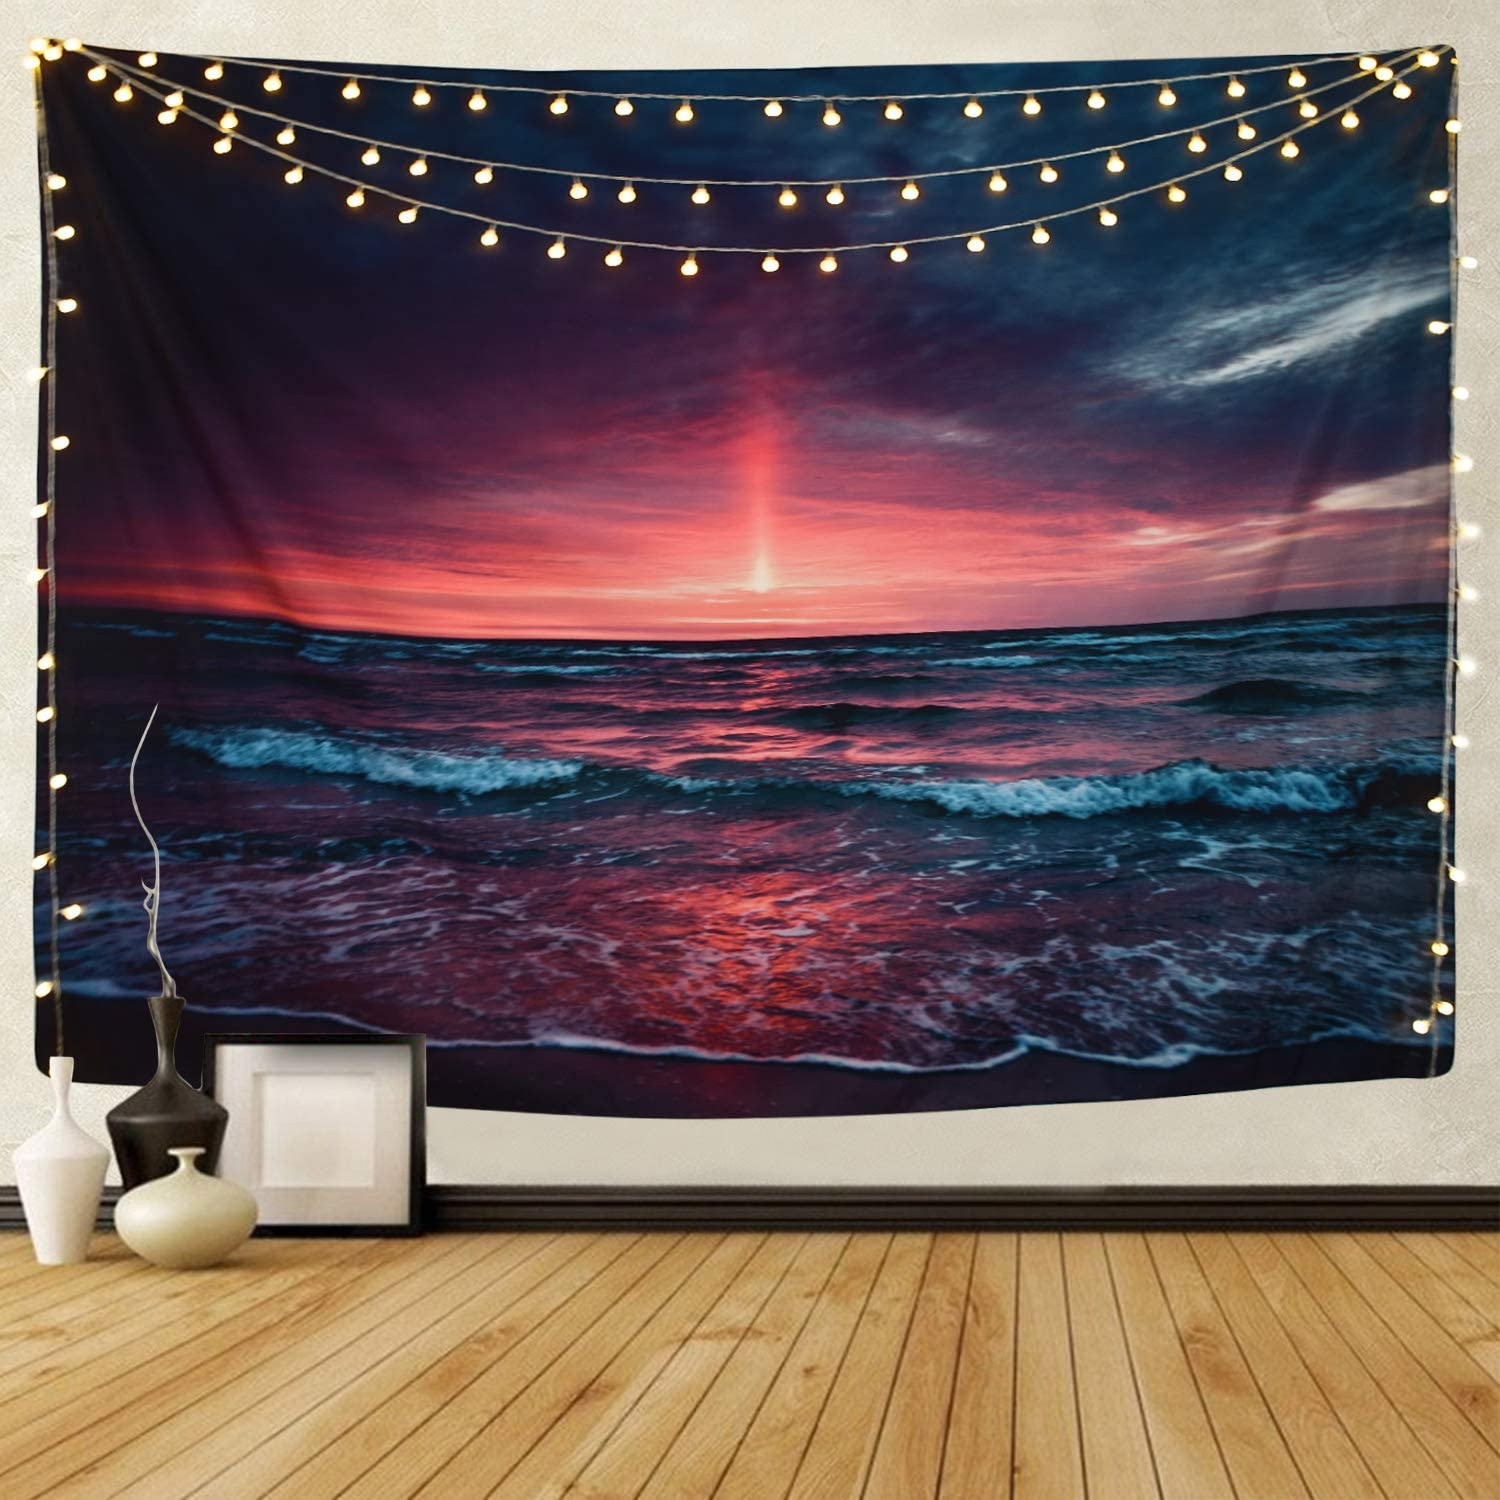 """Martine Mall Tapestry Wall Tapestry Wall Hanging TapestriesHawaiianWave Wall Tapestries, Splendid Sea with Sun Wall Blanket Wall Art for Home Living Room Dorm Decor, 59.1"""" x 51.2"""""""